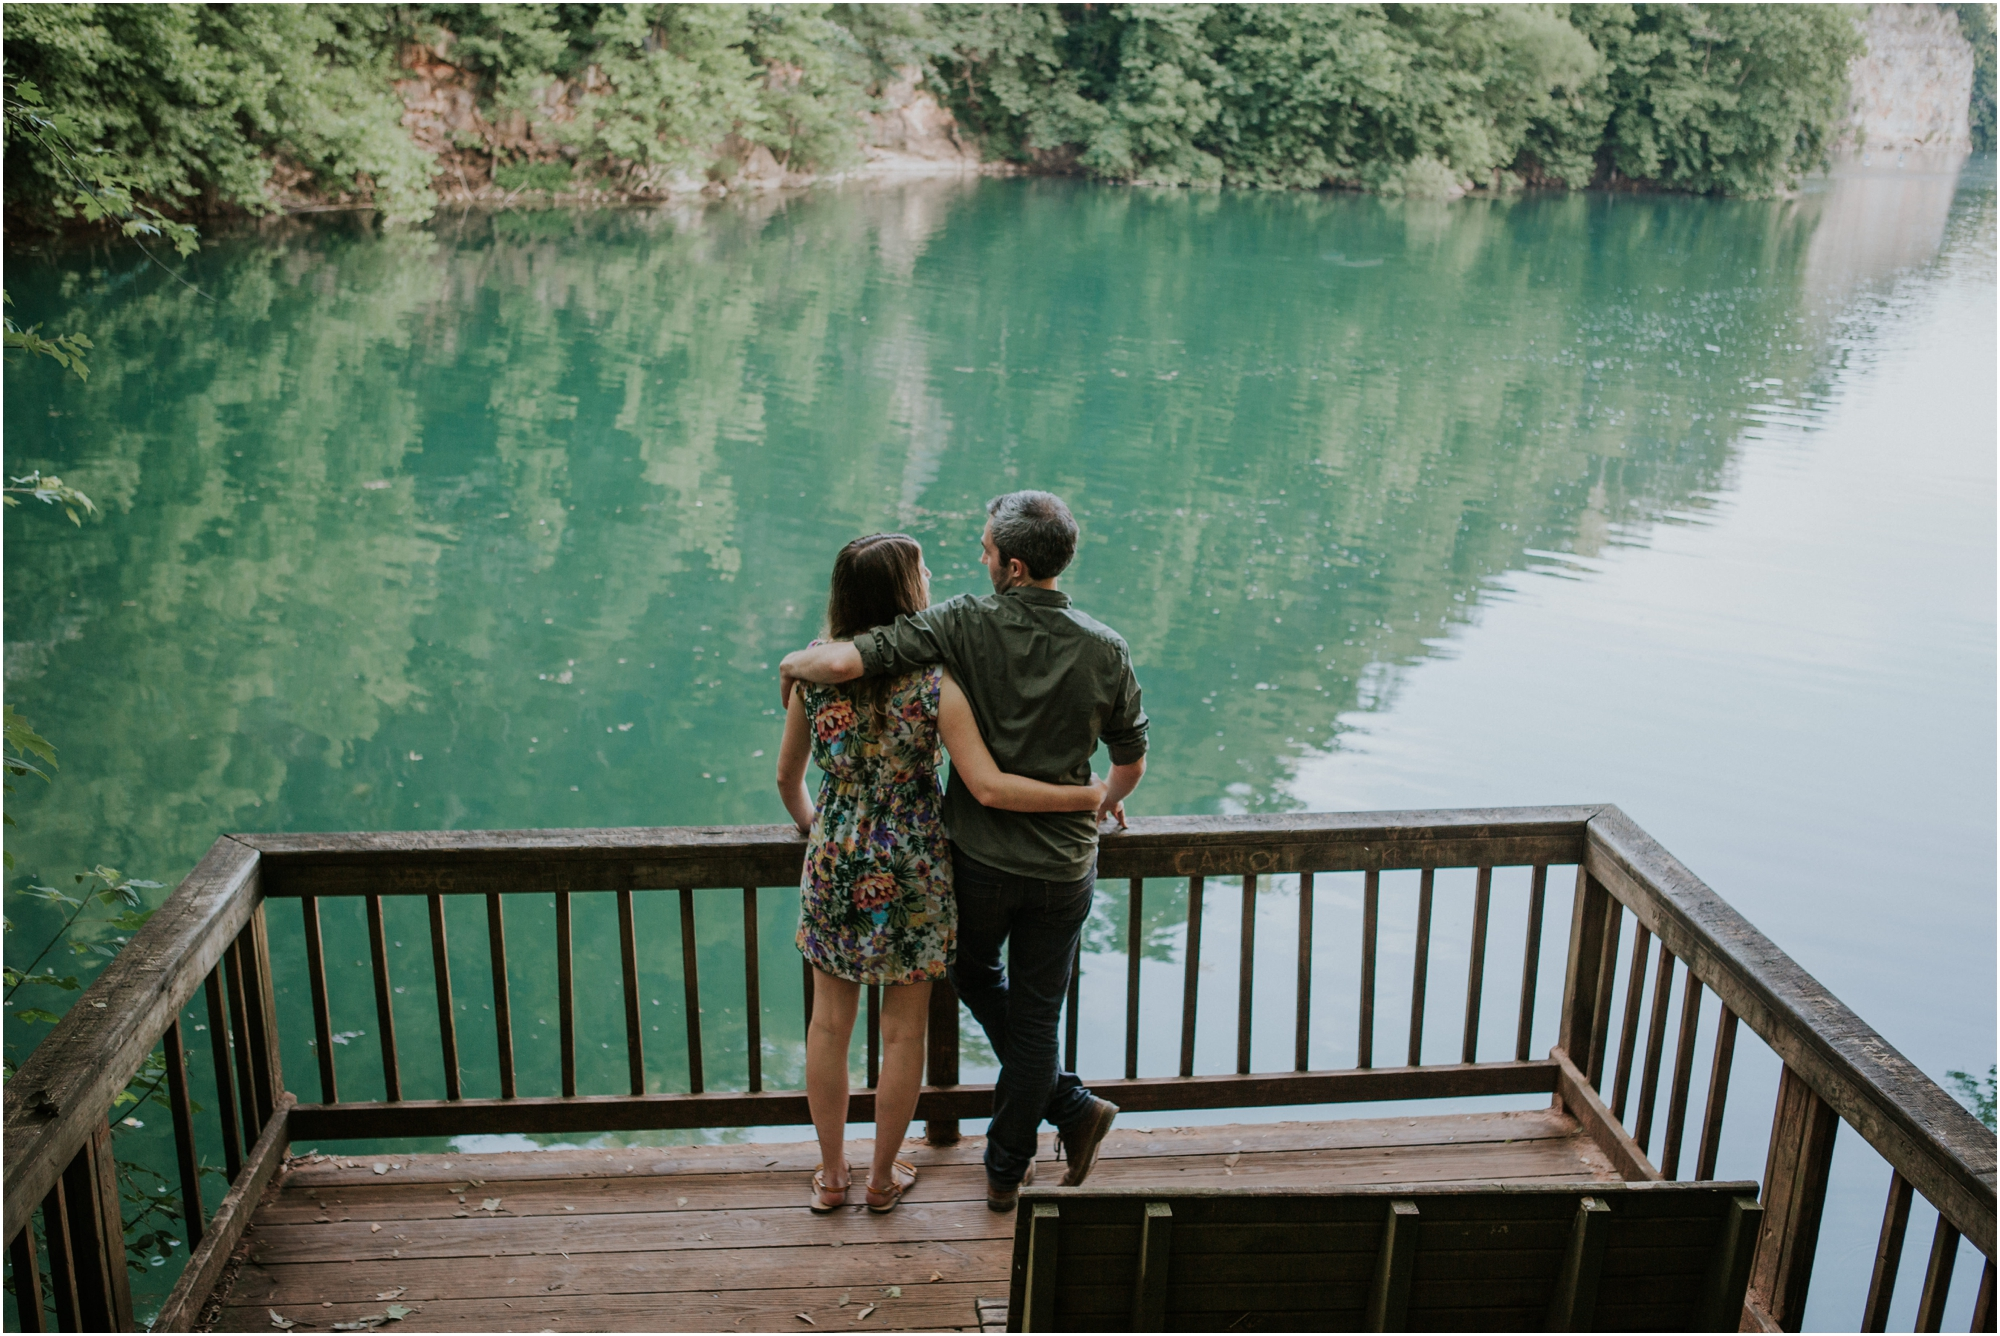 meads-quarry-ijams-nature-center-knoxville-tennessee-engagement-session-summer-northeast-tn-adventurous-outdoors-lake-katy-sergent_0006.jpg